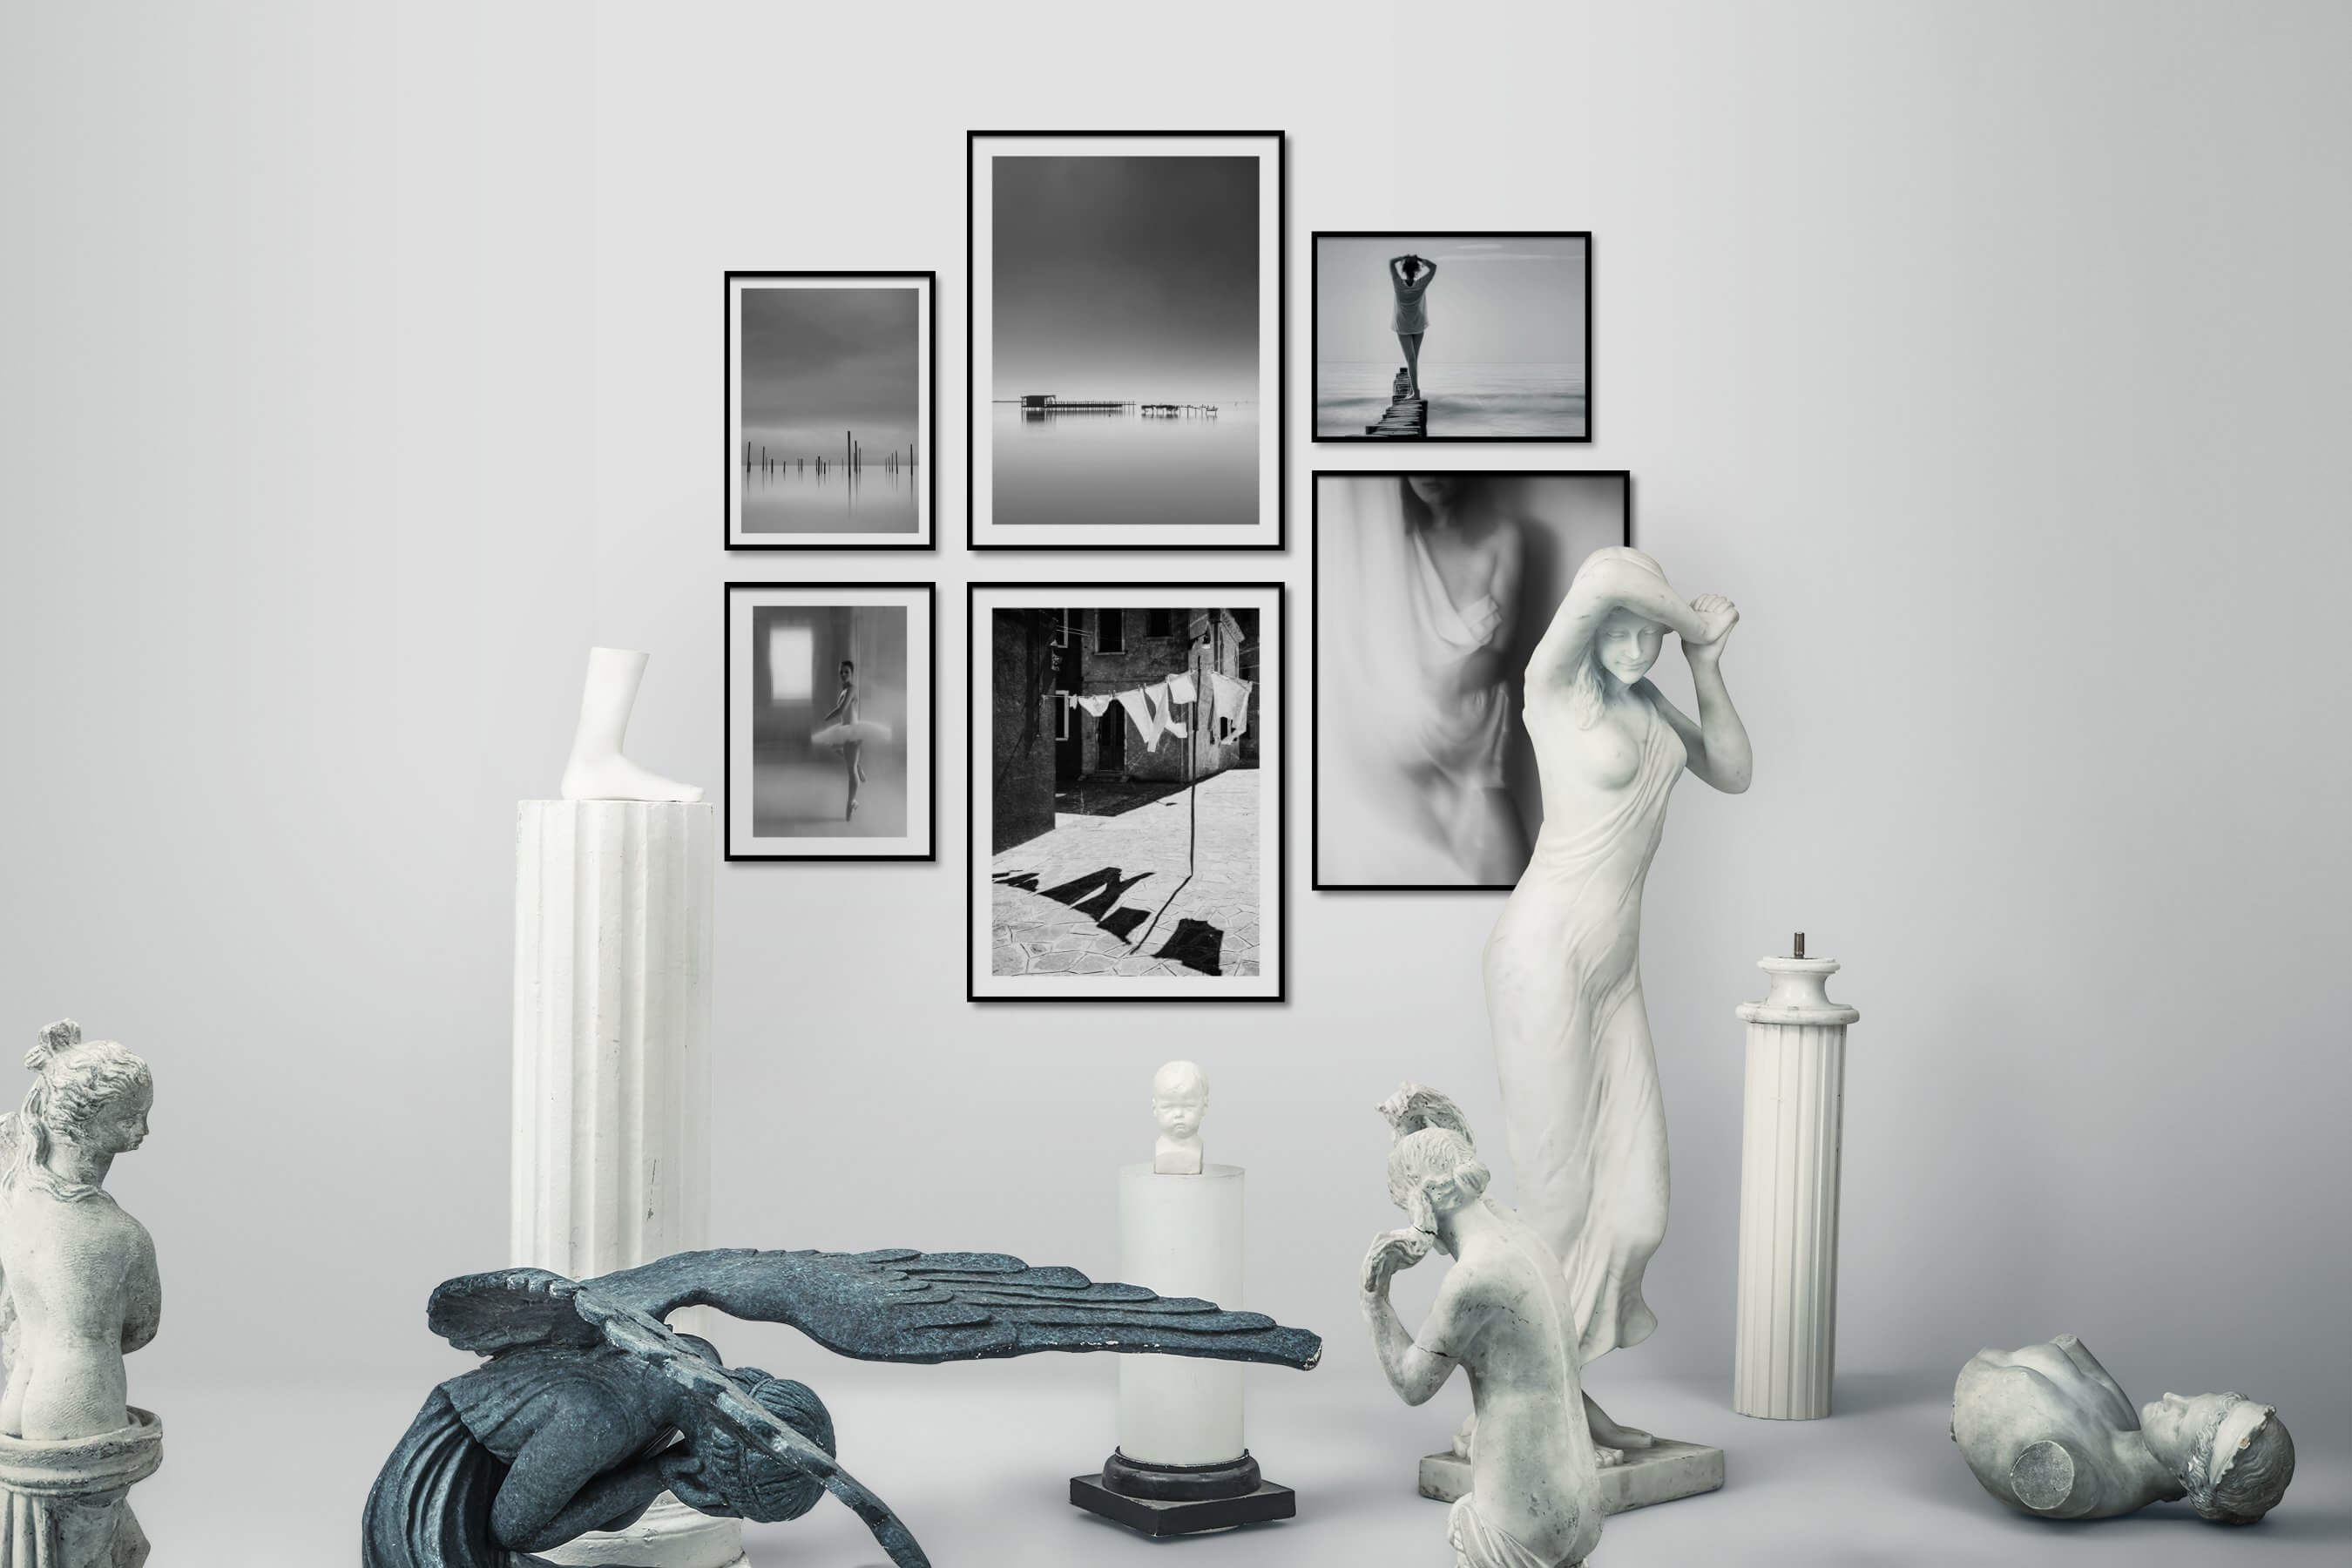 Gallery wall idea with six framed pictures arranged on a wall depicting Black & White, For the Minimalist, Beach & Water, Mindfulness, Fashion & Beauty, and City Life